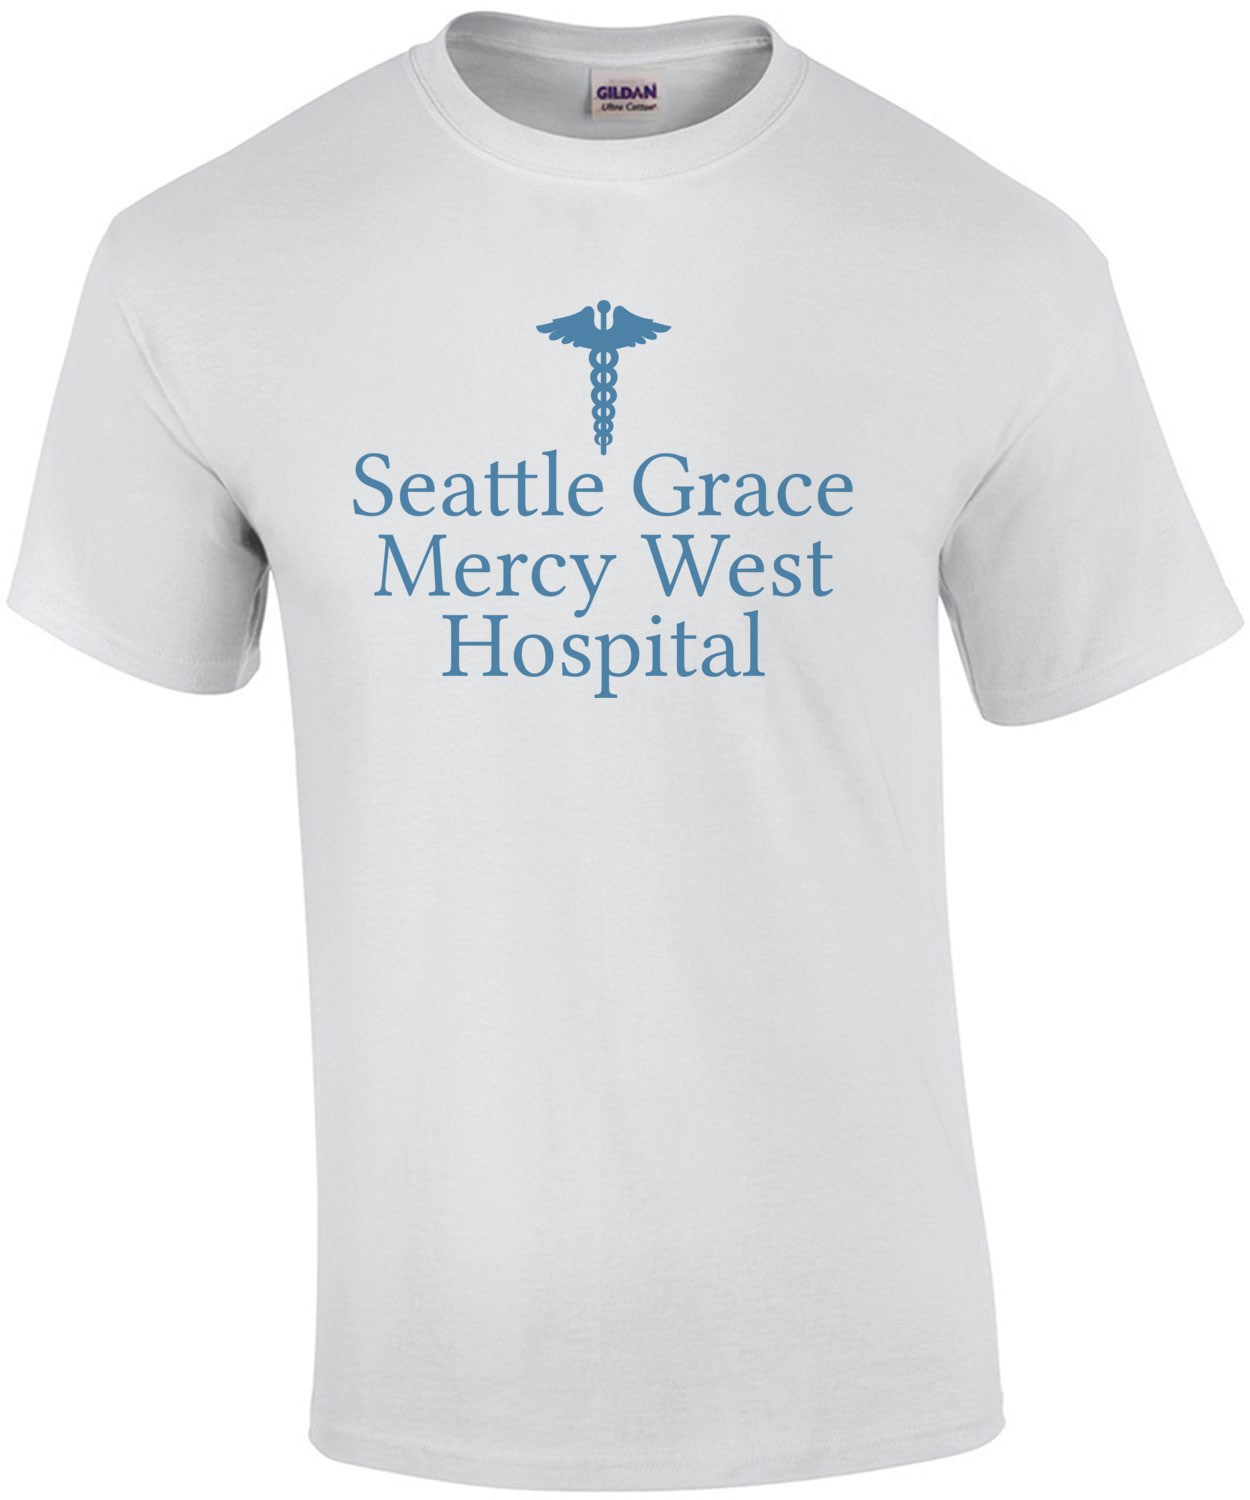 Seattle Grace Mercy West Hospital Grey's Anatomy Shirt